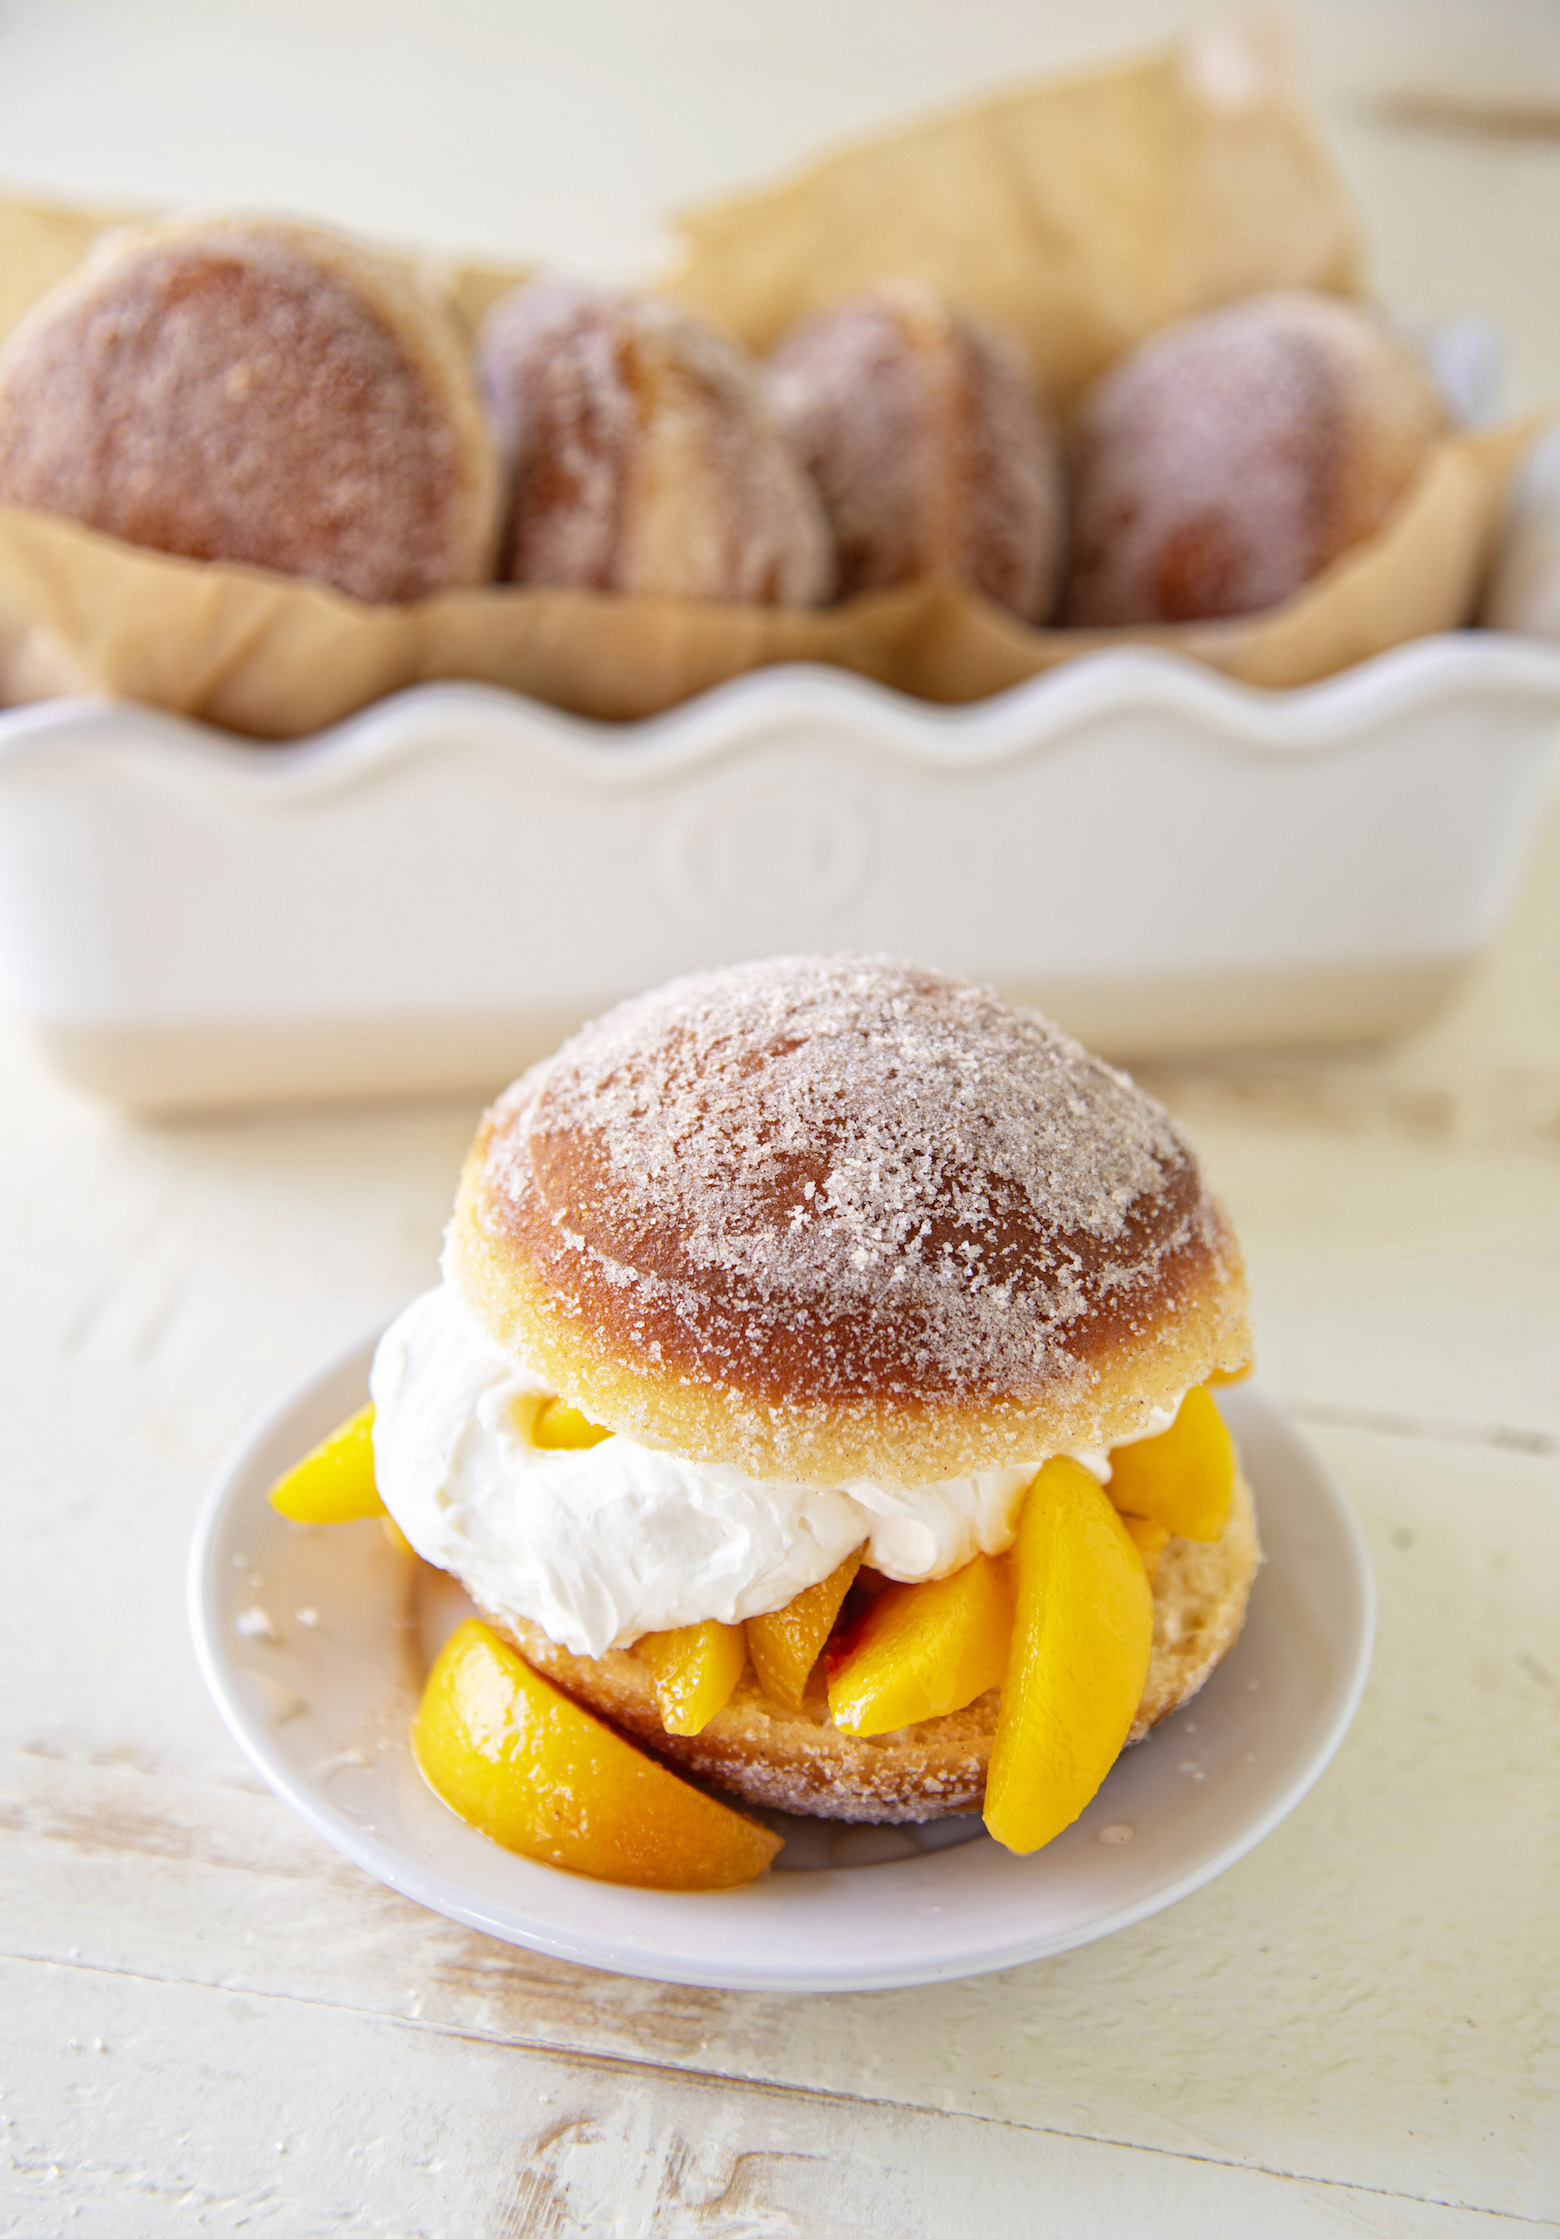 Cinnamon Donut Peach Shortcake from Holy Sweet! 60 Indulgent Recipes for Bigger Better Desserts